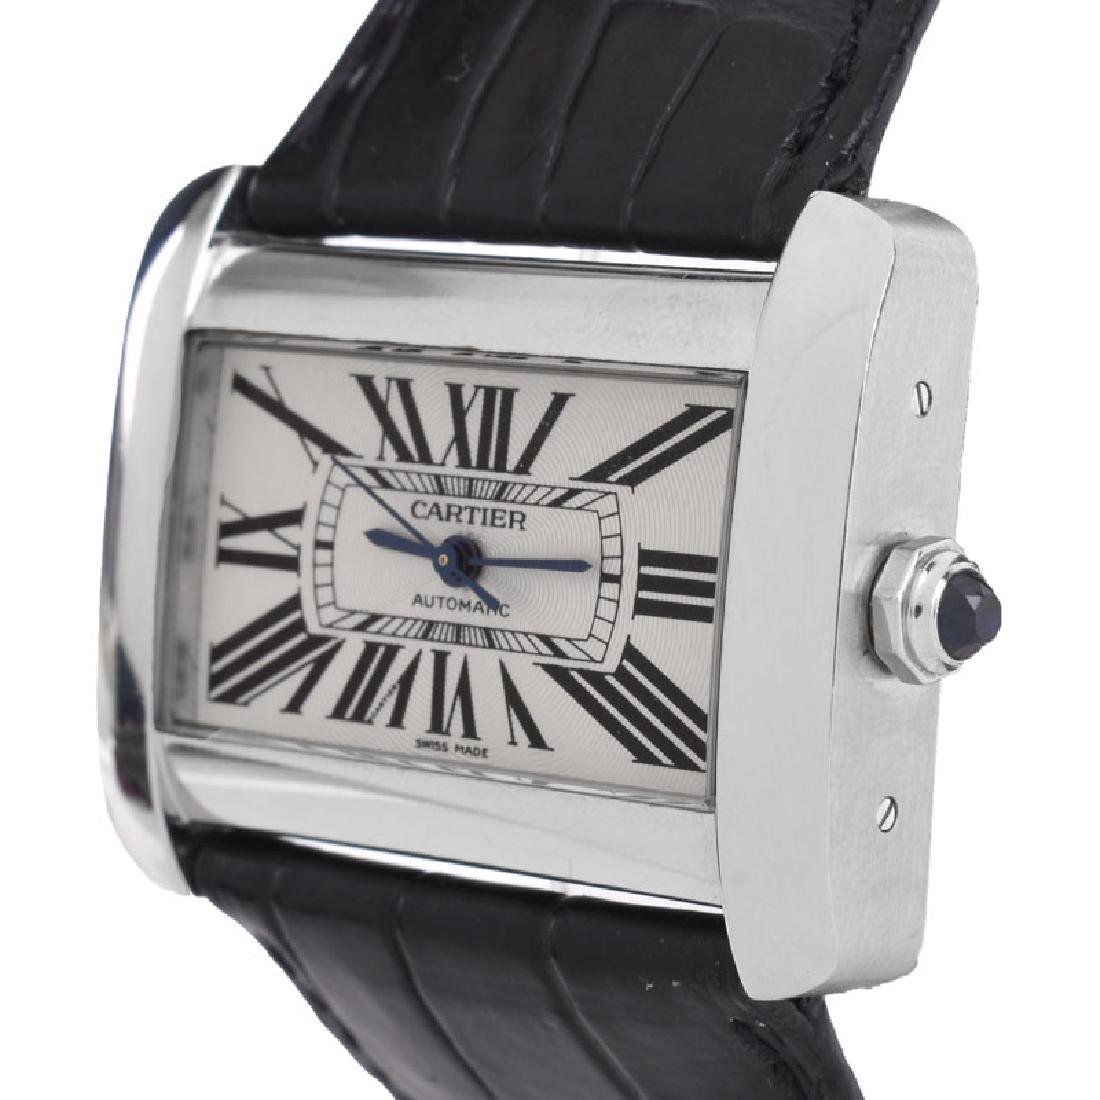 Two (2) Lady's Cartier Watches - 4